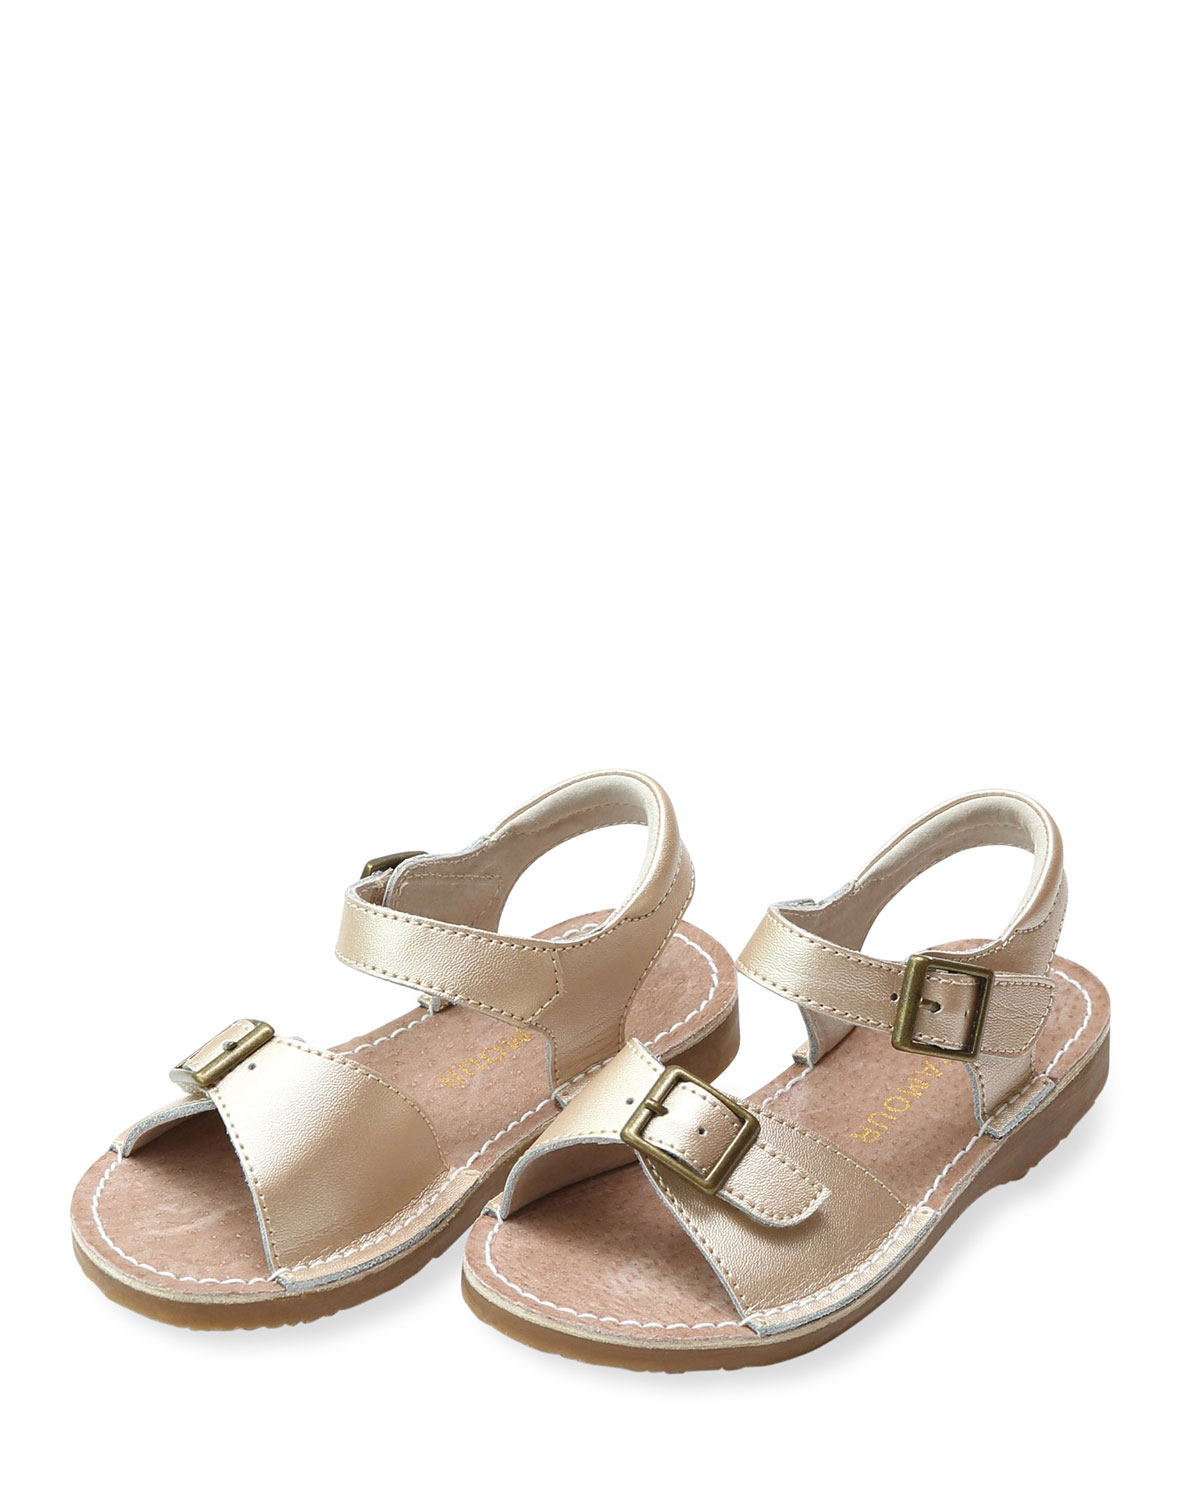 Olivia Leather Buckle Sandals